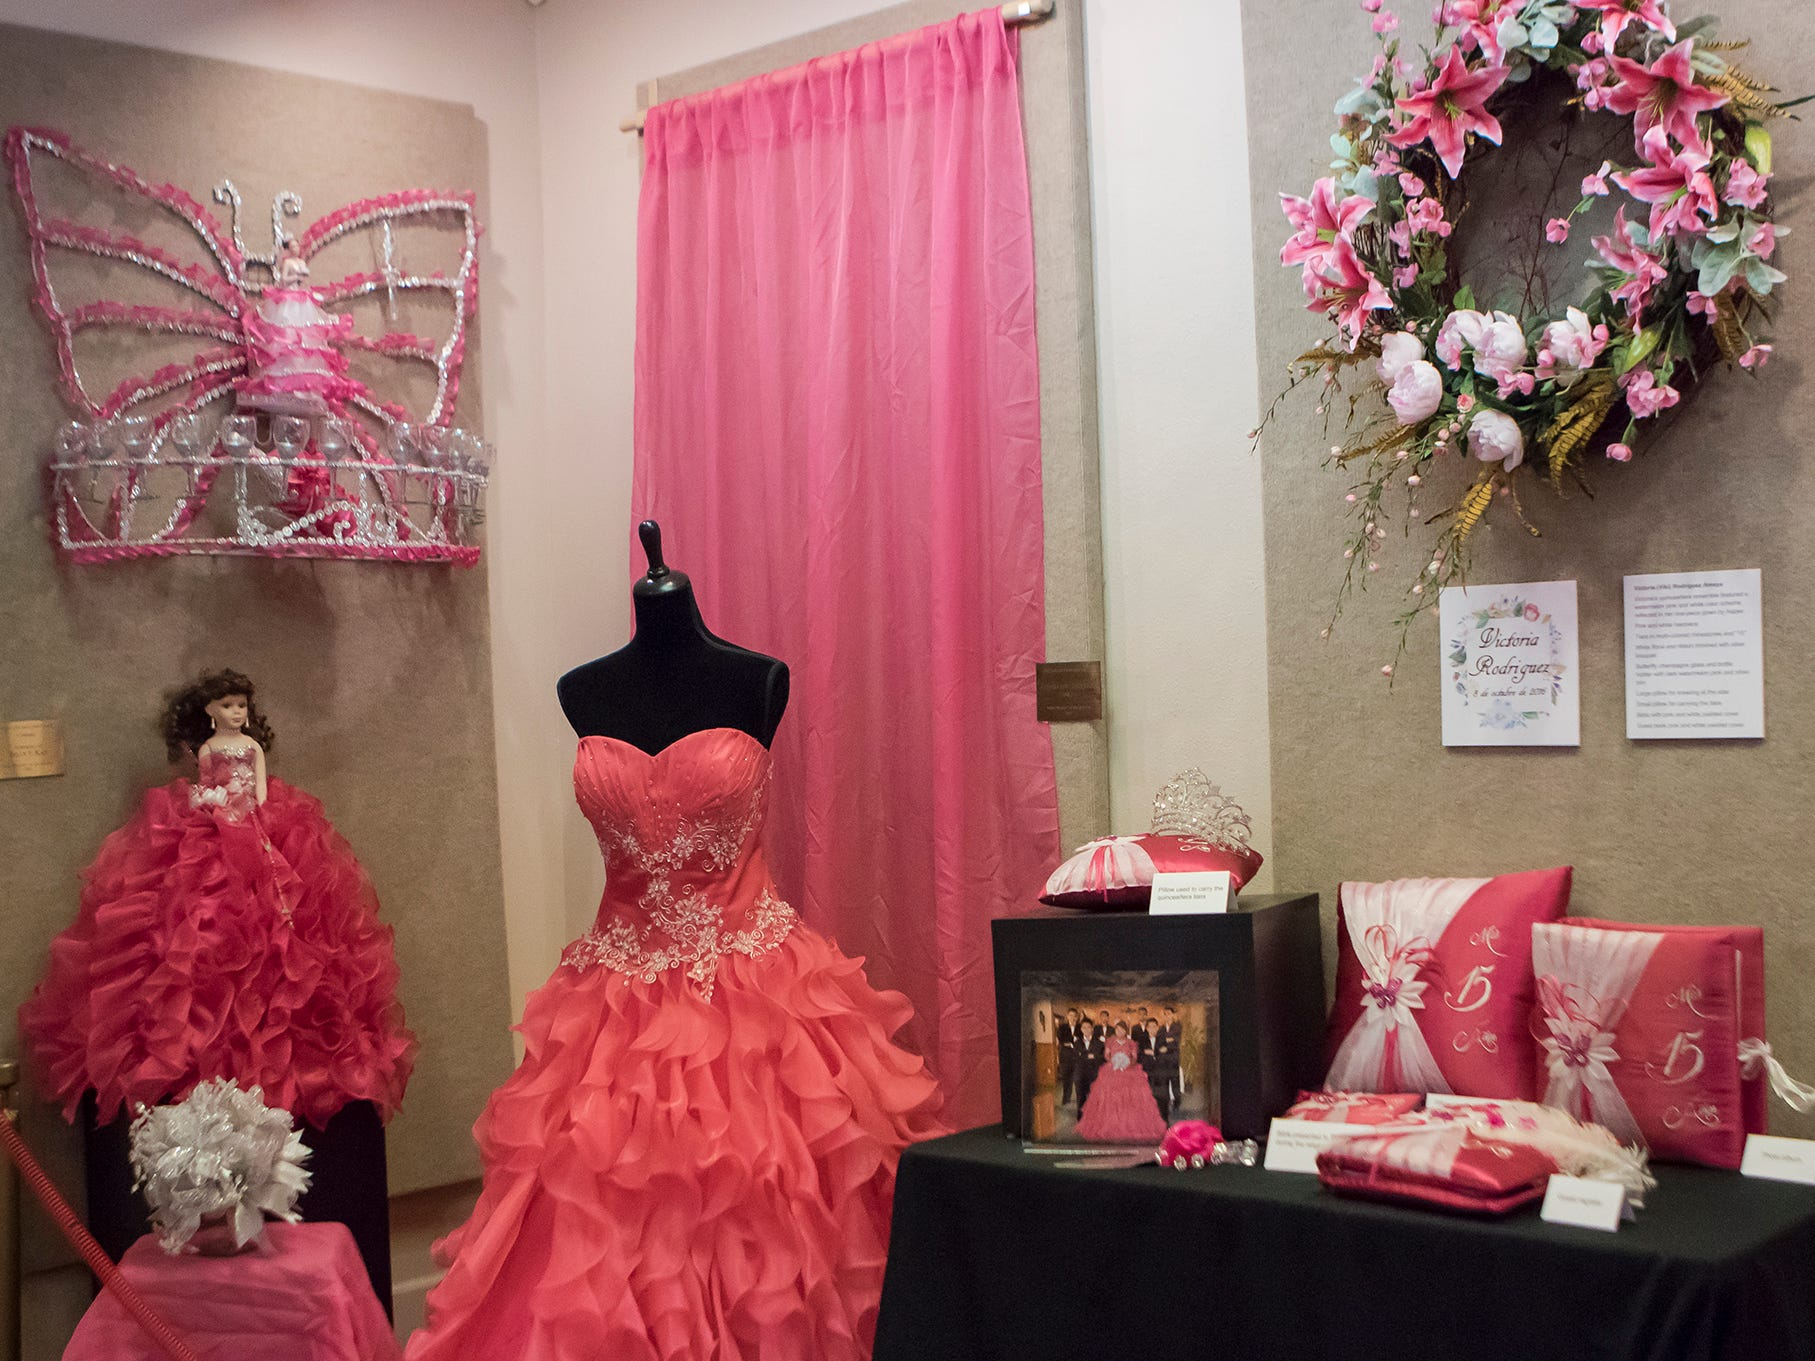 Victoria Rodriguez's quinceañera dress and accessories sit on display at the Union Museum of History and Art in Farmerville, La. as part of an exhibit highlighting Hispanic culture in Union Parish on Feb. 7. Quinceañeras are traditional celebrations for 15 year old girls to signify their transition into womanhood.